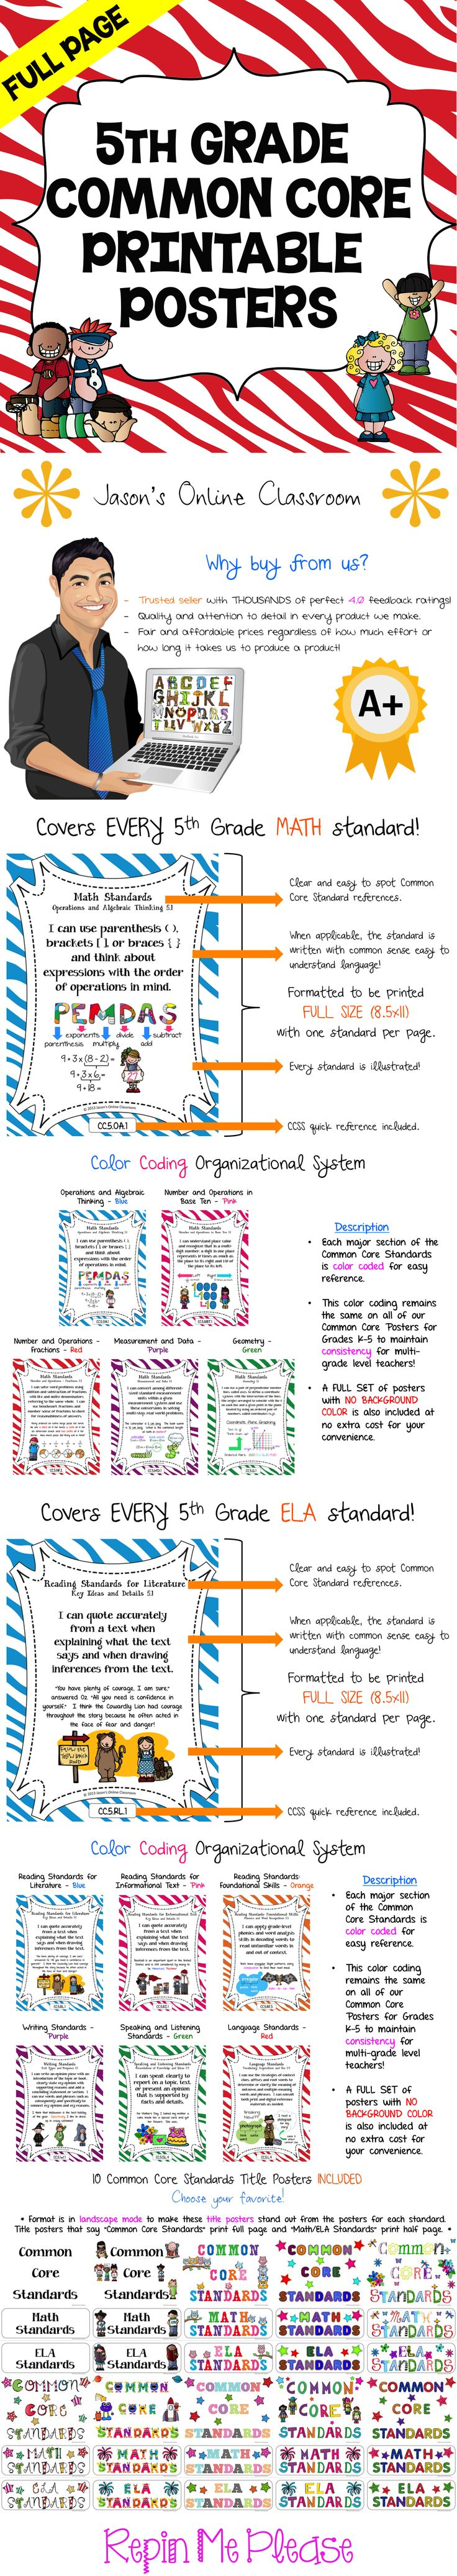 5th GRADE COMMON CORE POSTERS - Save a ton of time by buying our FULL PAGE SIZE pre-made Common Core color coded posters with detailed visual examples. We also offer half-sized posters which can be found at our TpT store. $$